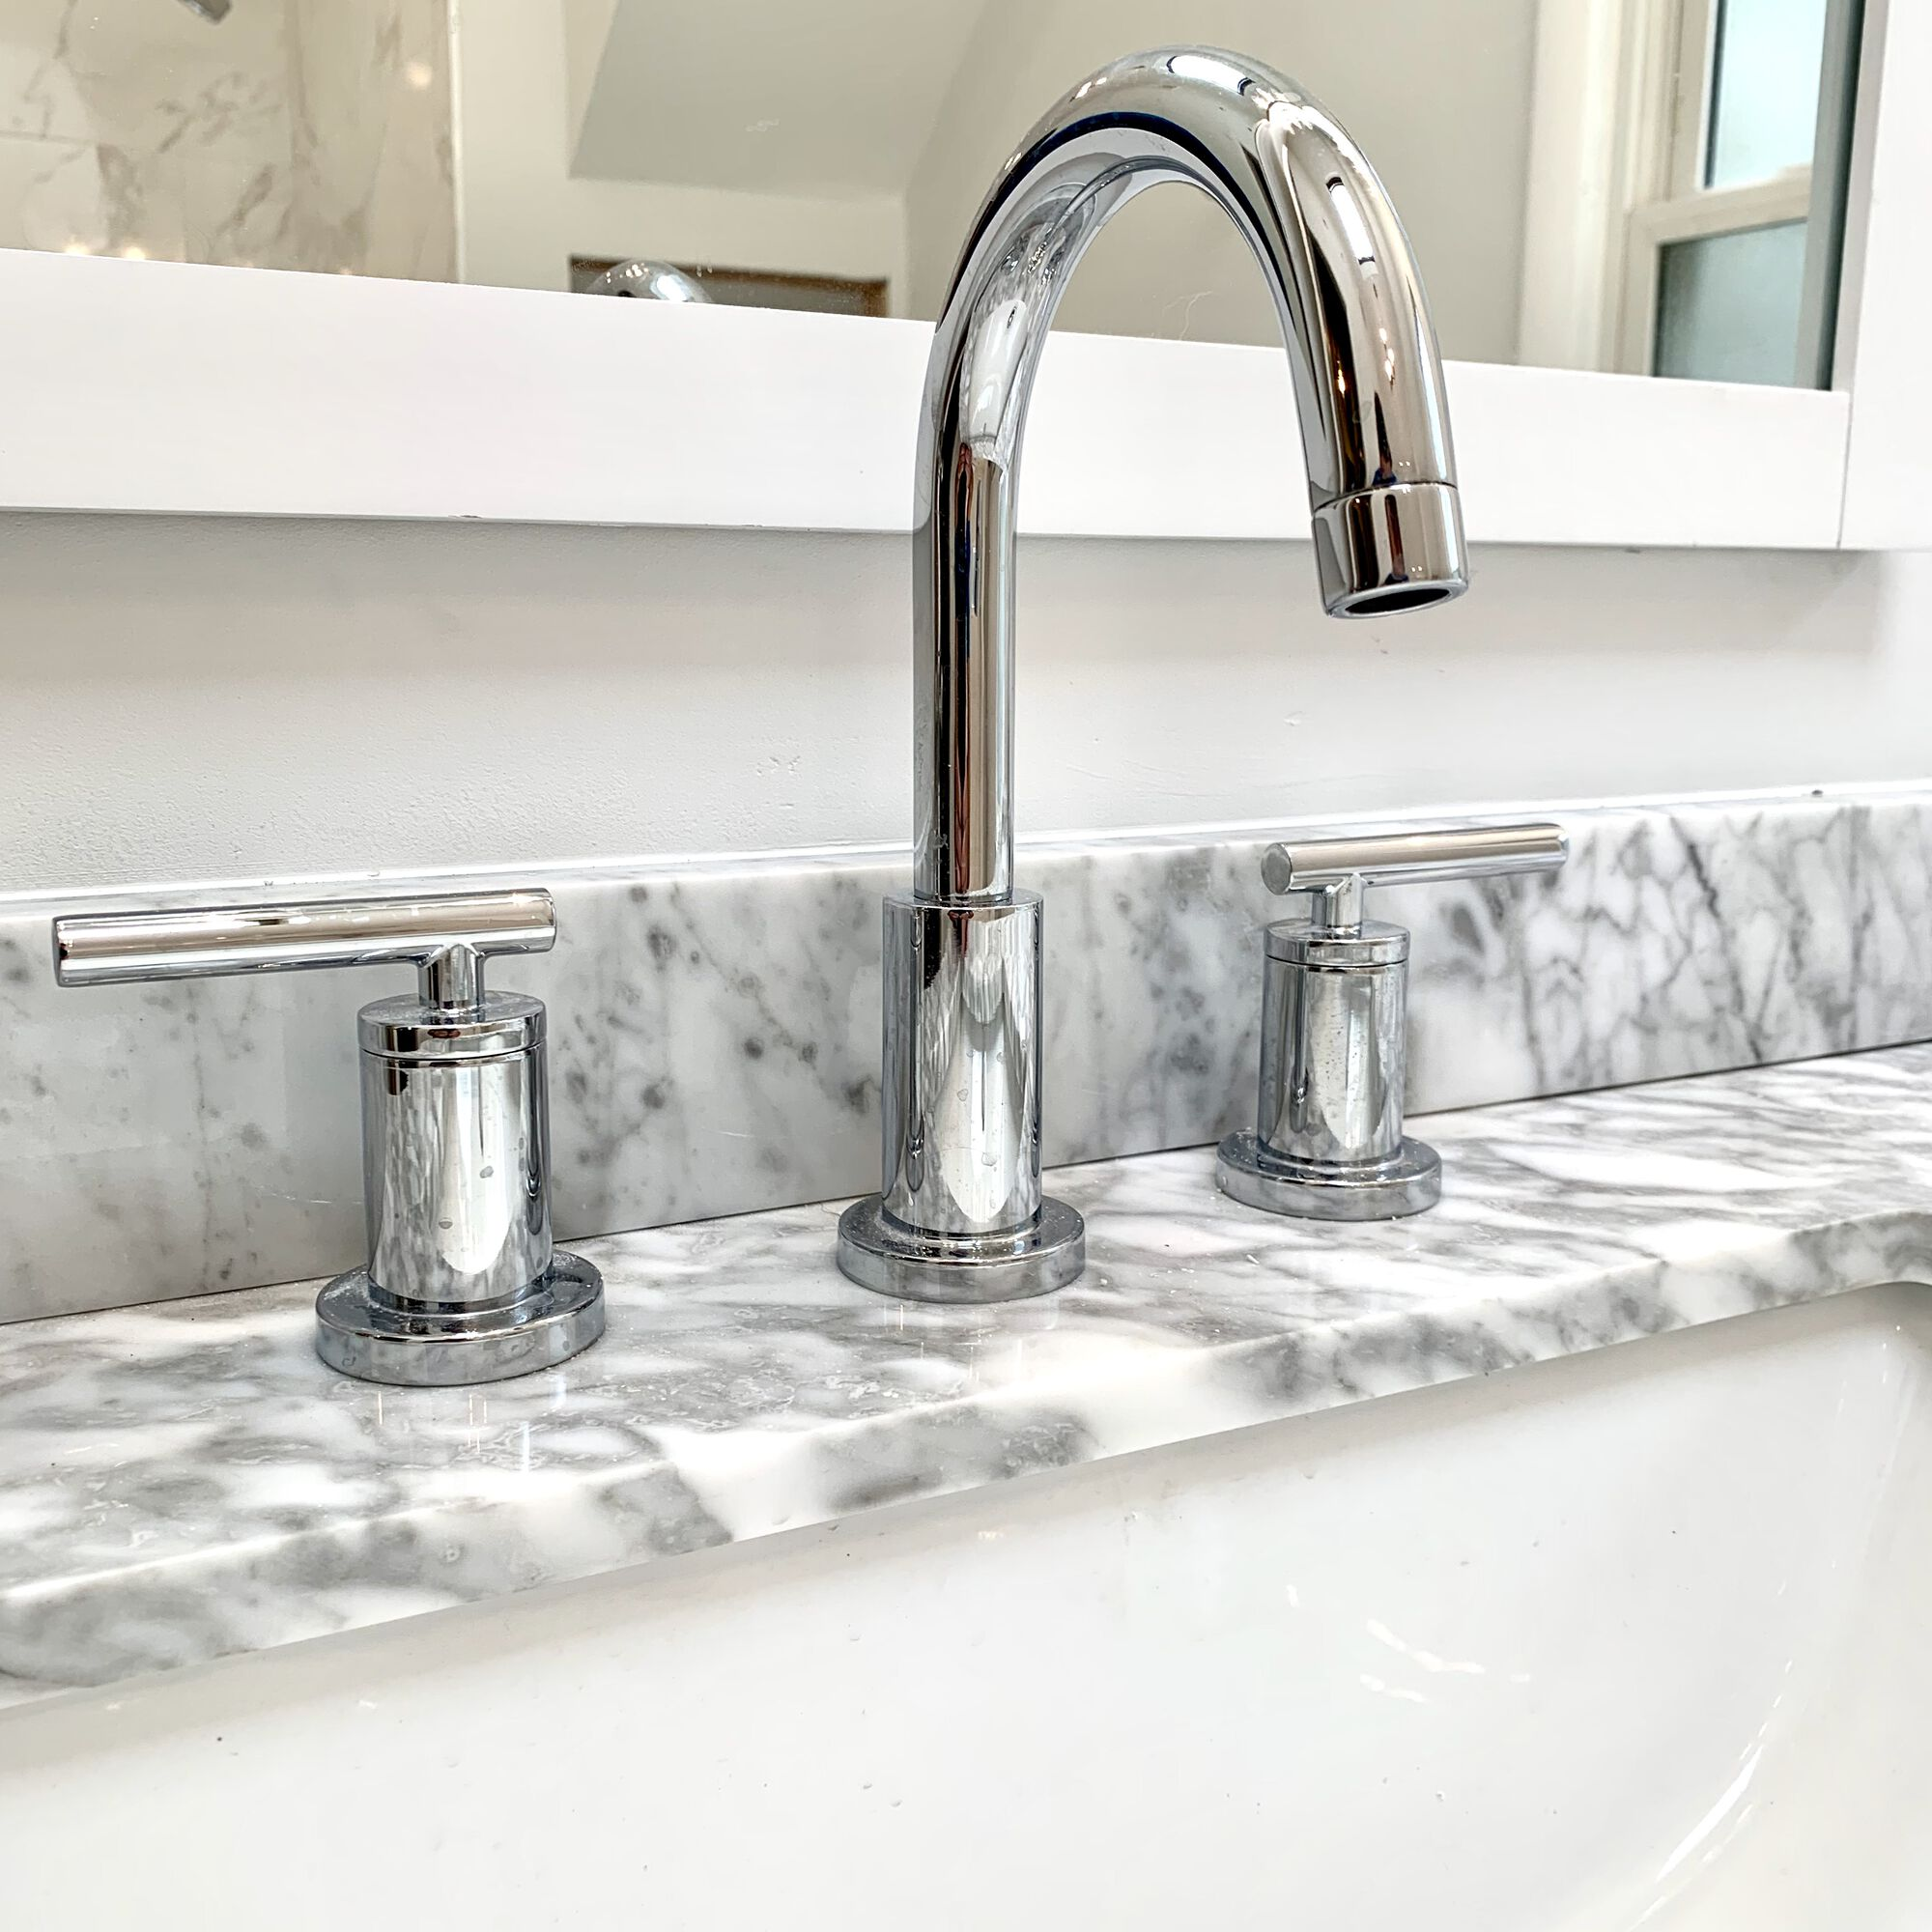 American Standard Sink Faucets for New Jersey Bath Renovations